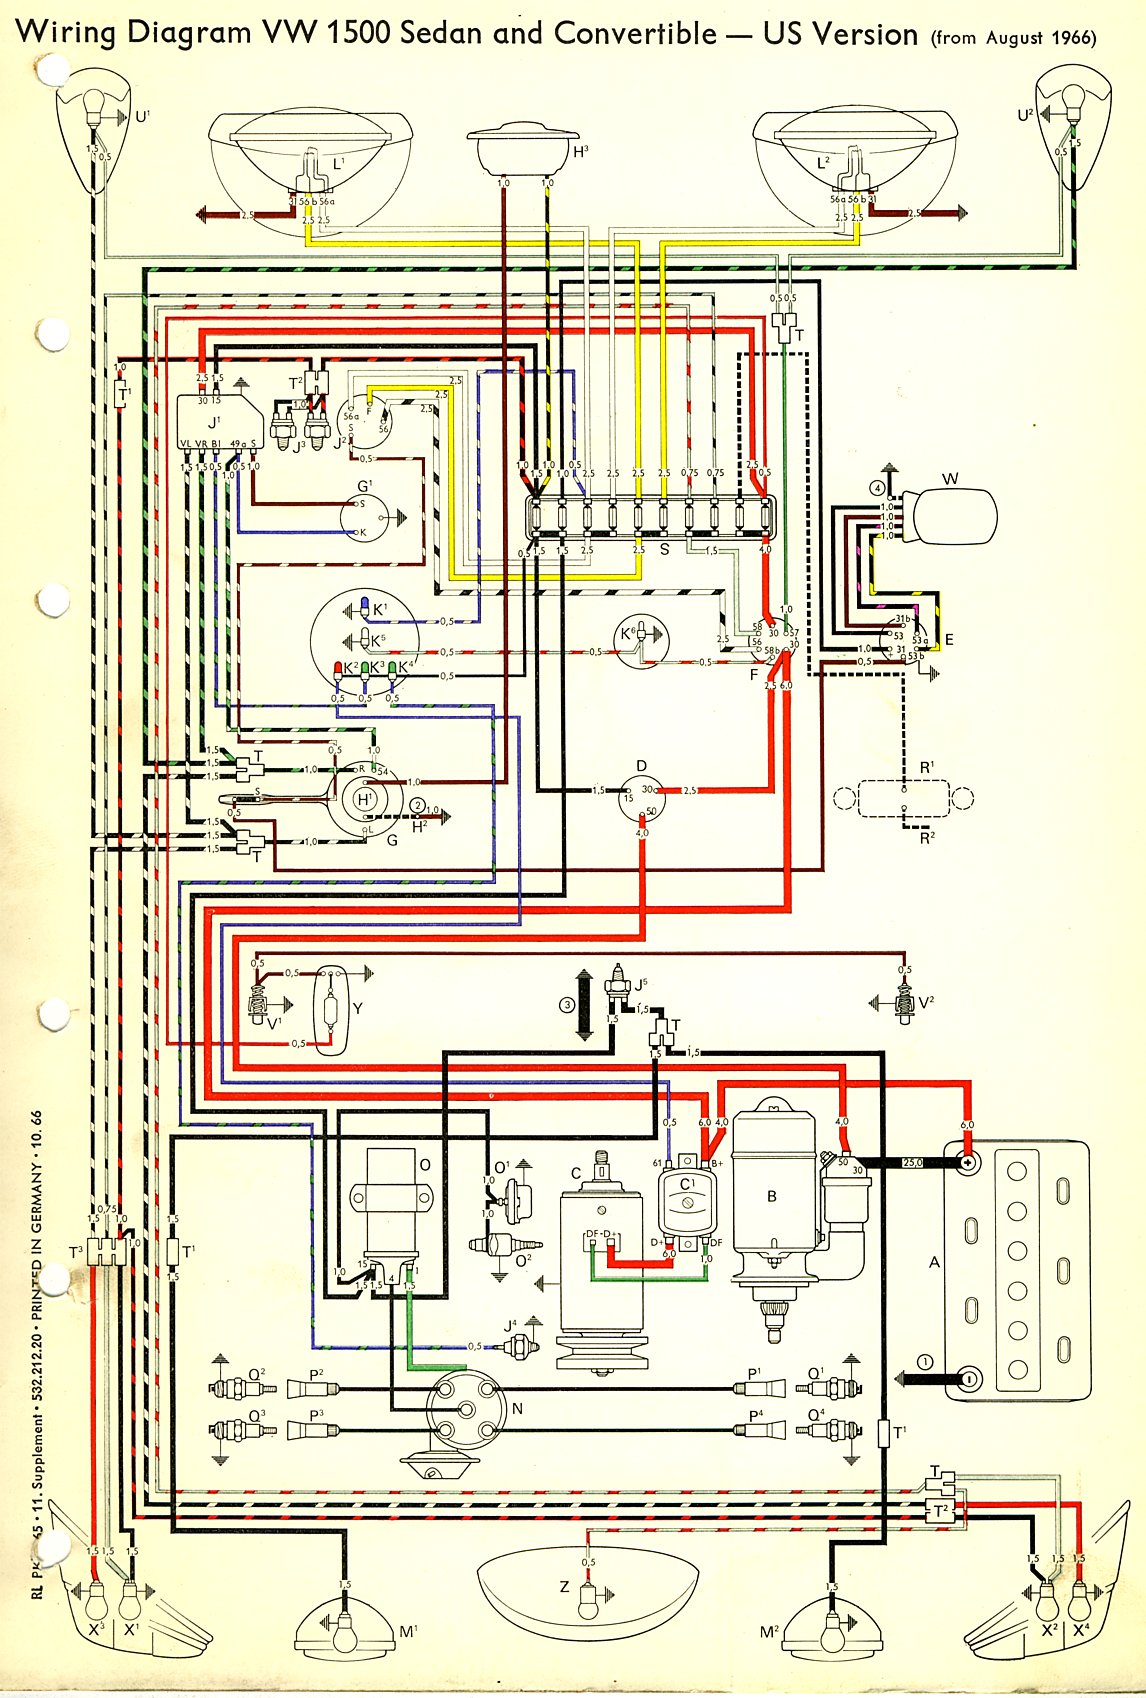 Where Can I Find A Wiring Diagram For My 1967 Vw Beetle